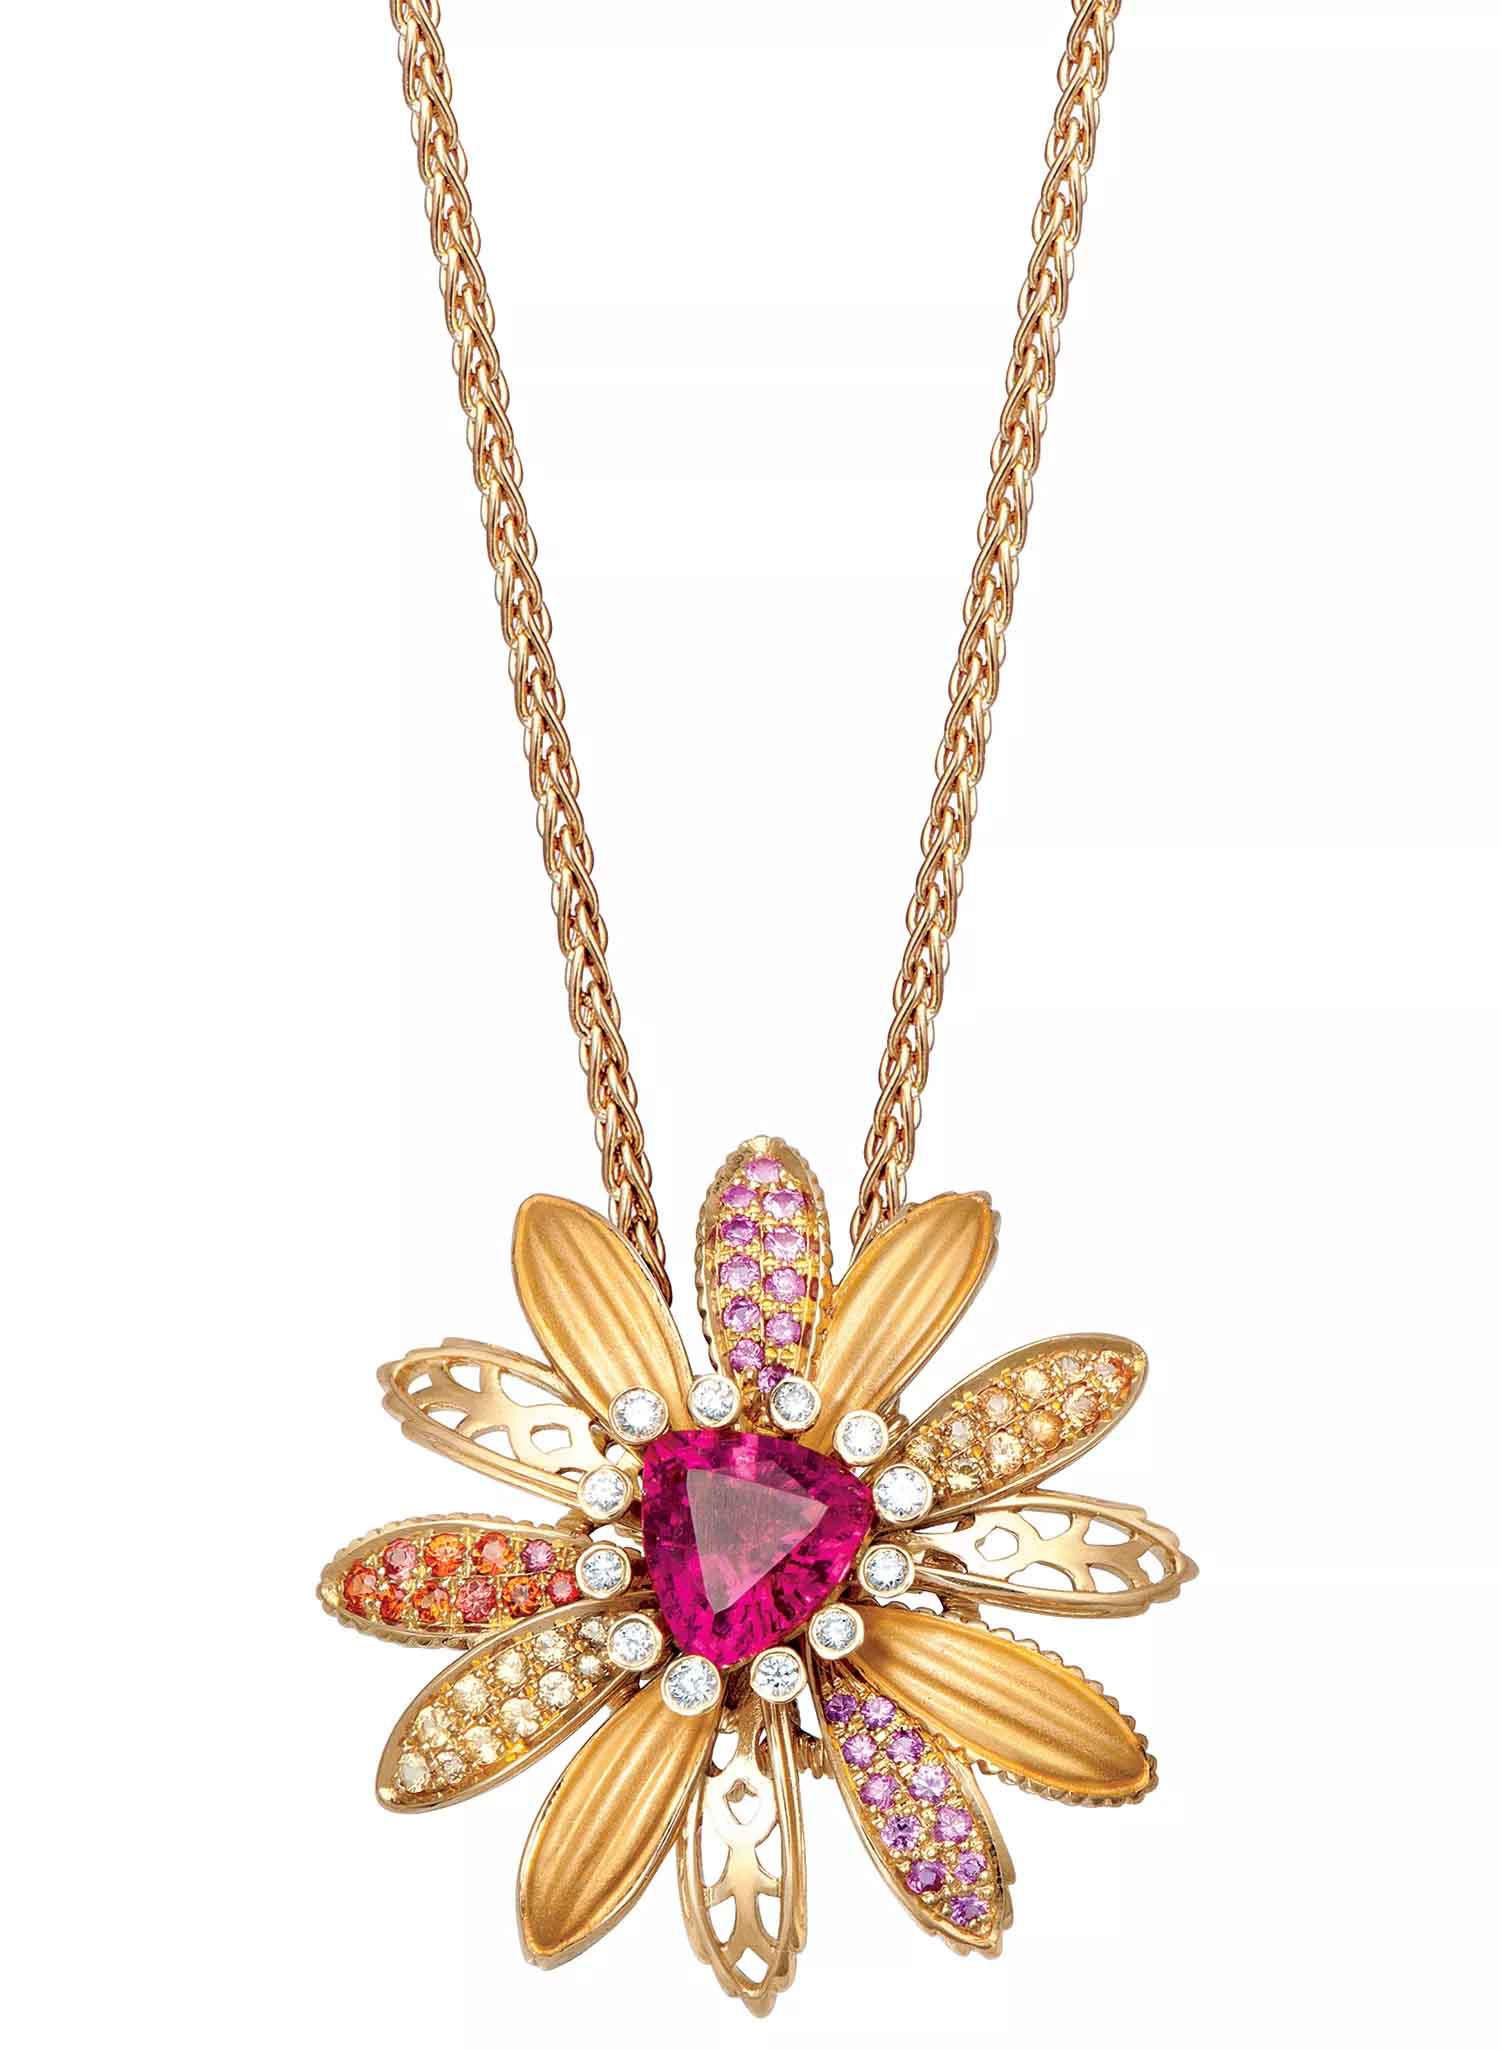 Necklace in 18k gold with 1.95 ct. pink tourmaline